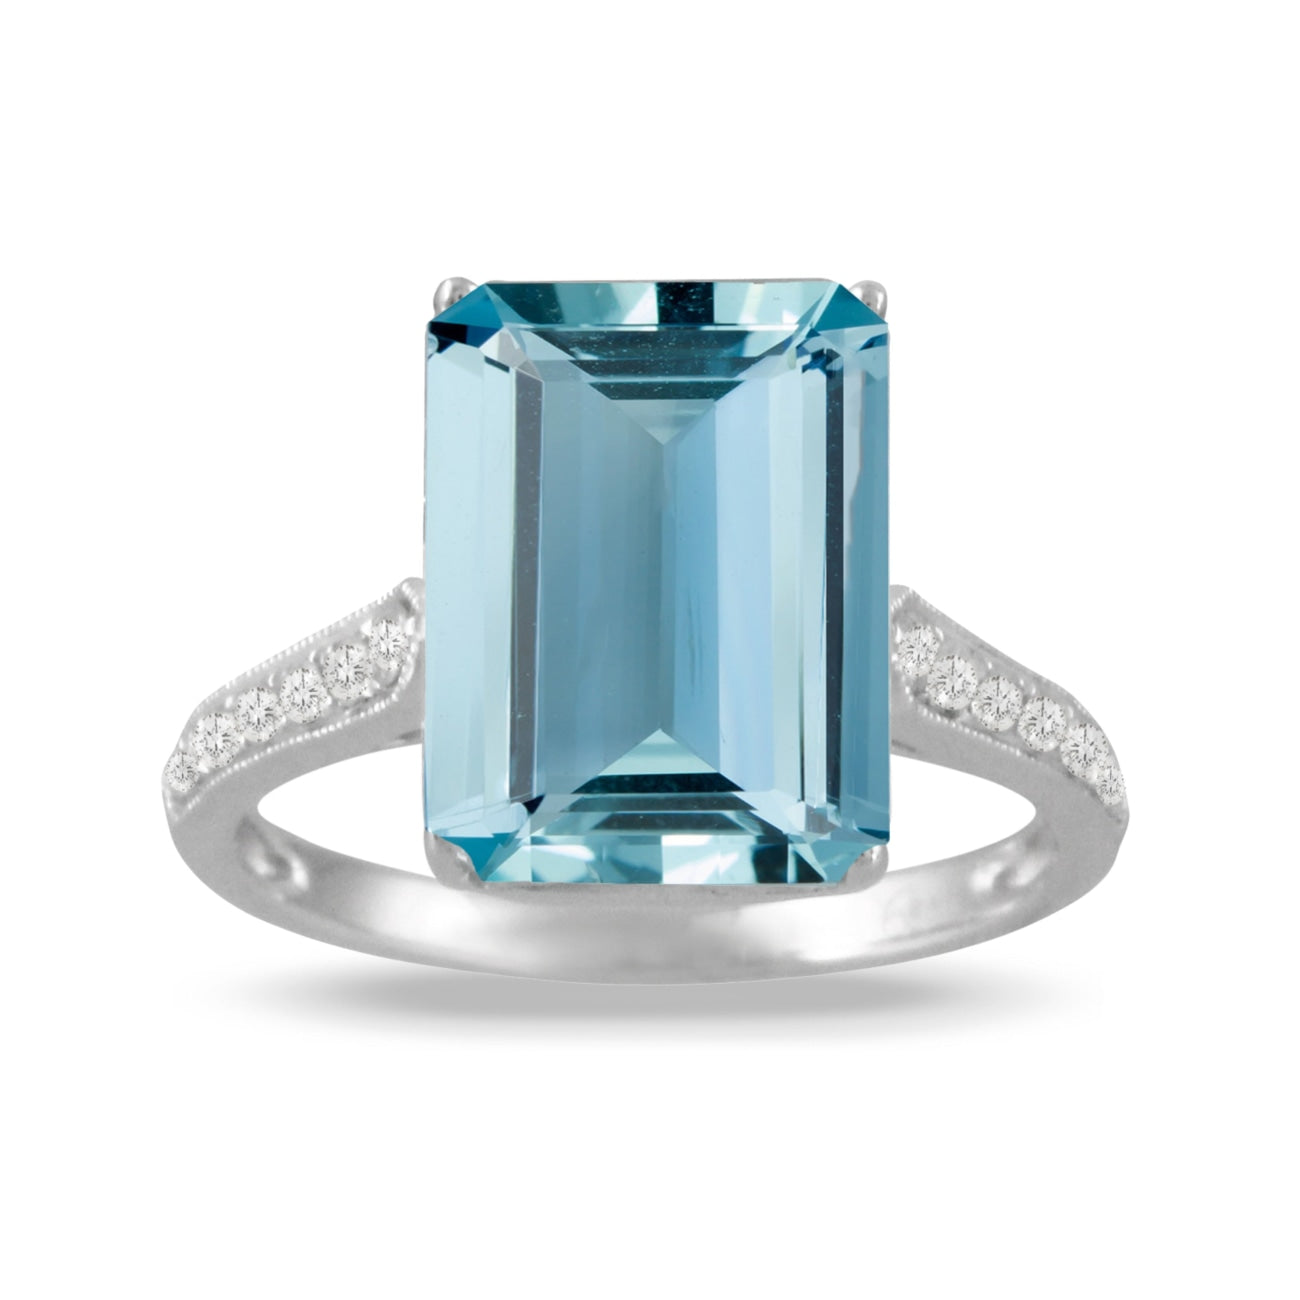 Doves Jewelry - Doves 6.56 Carat Aquamarine and Diamond Ring 18k | Manfredi Jewels